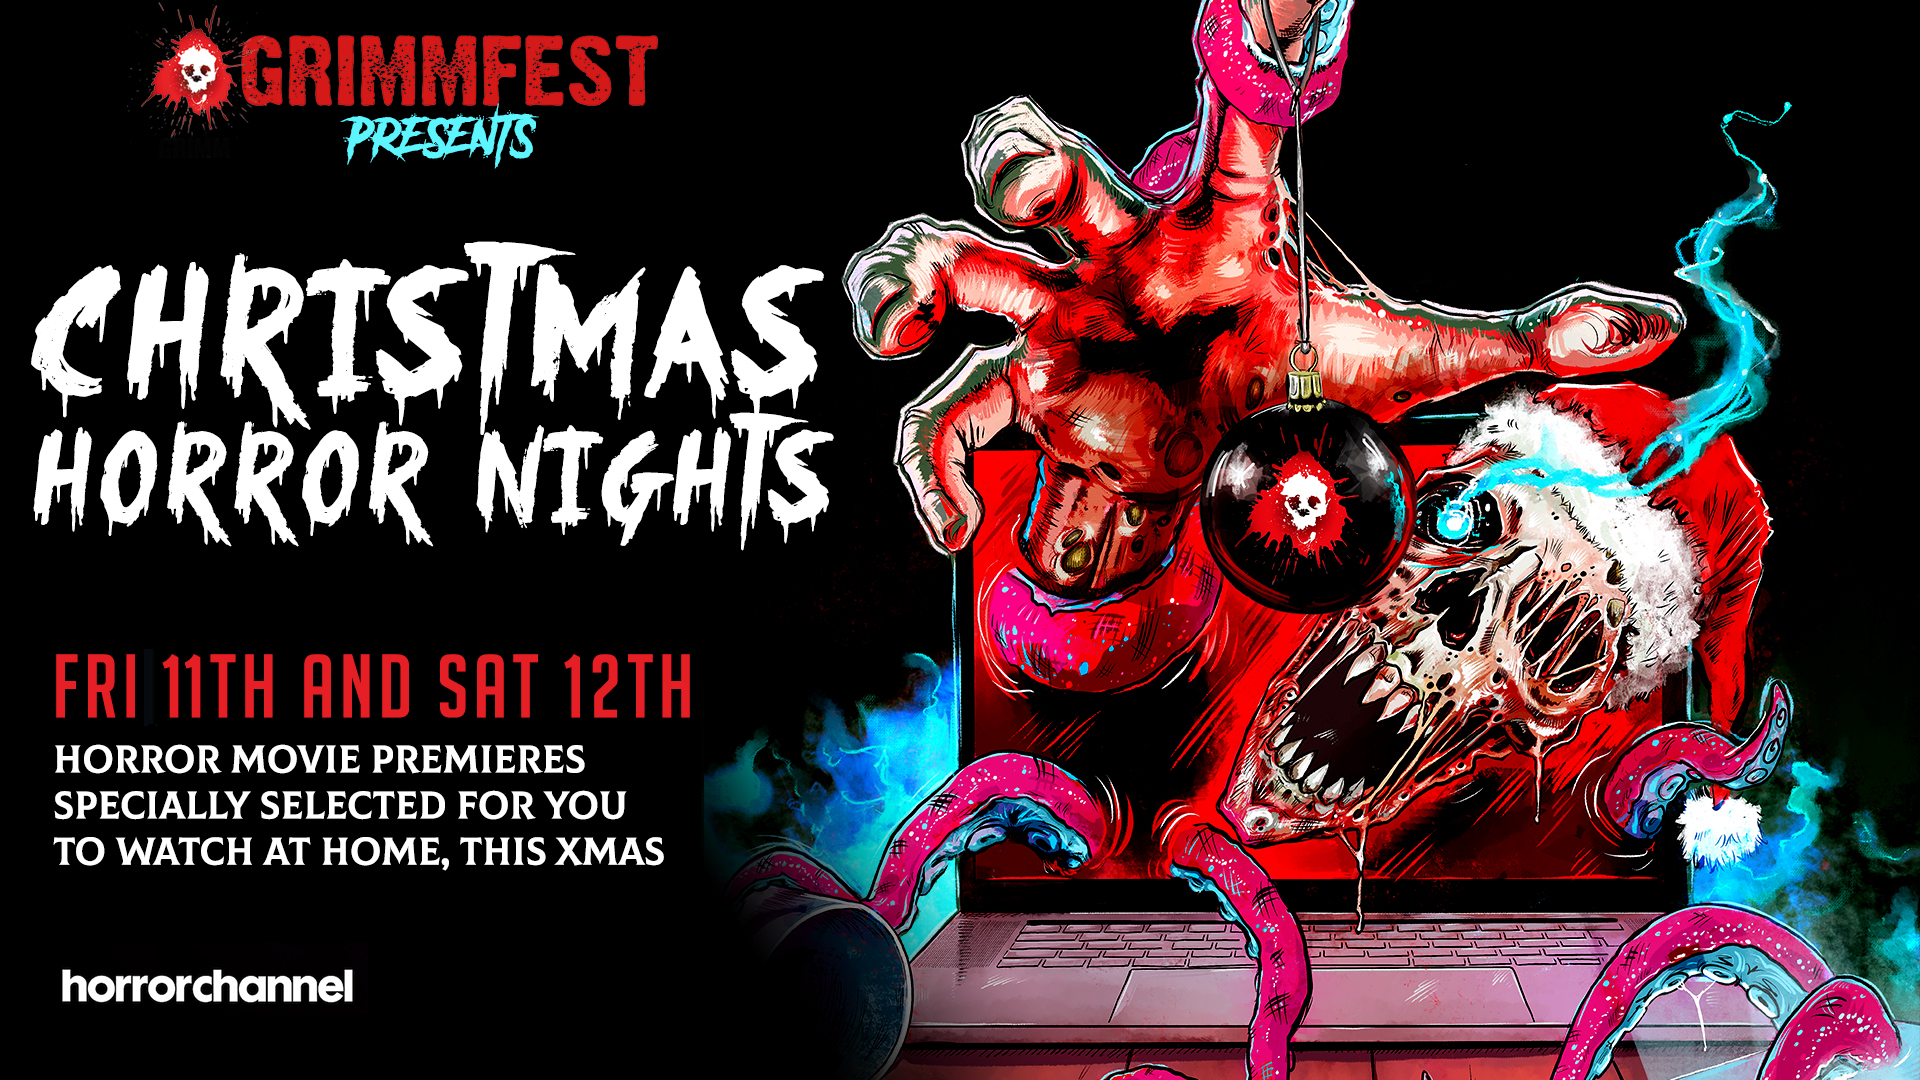 XMAS HORROR NIGHTS